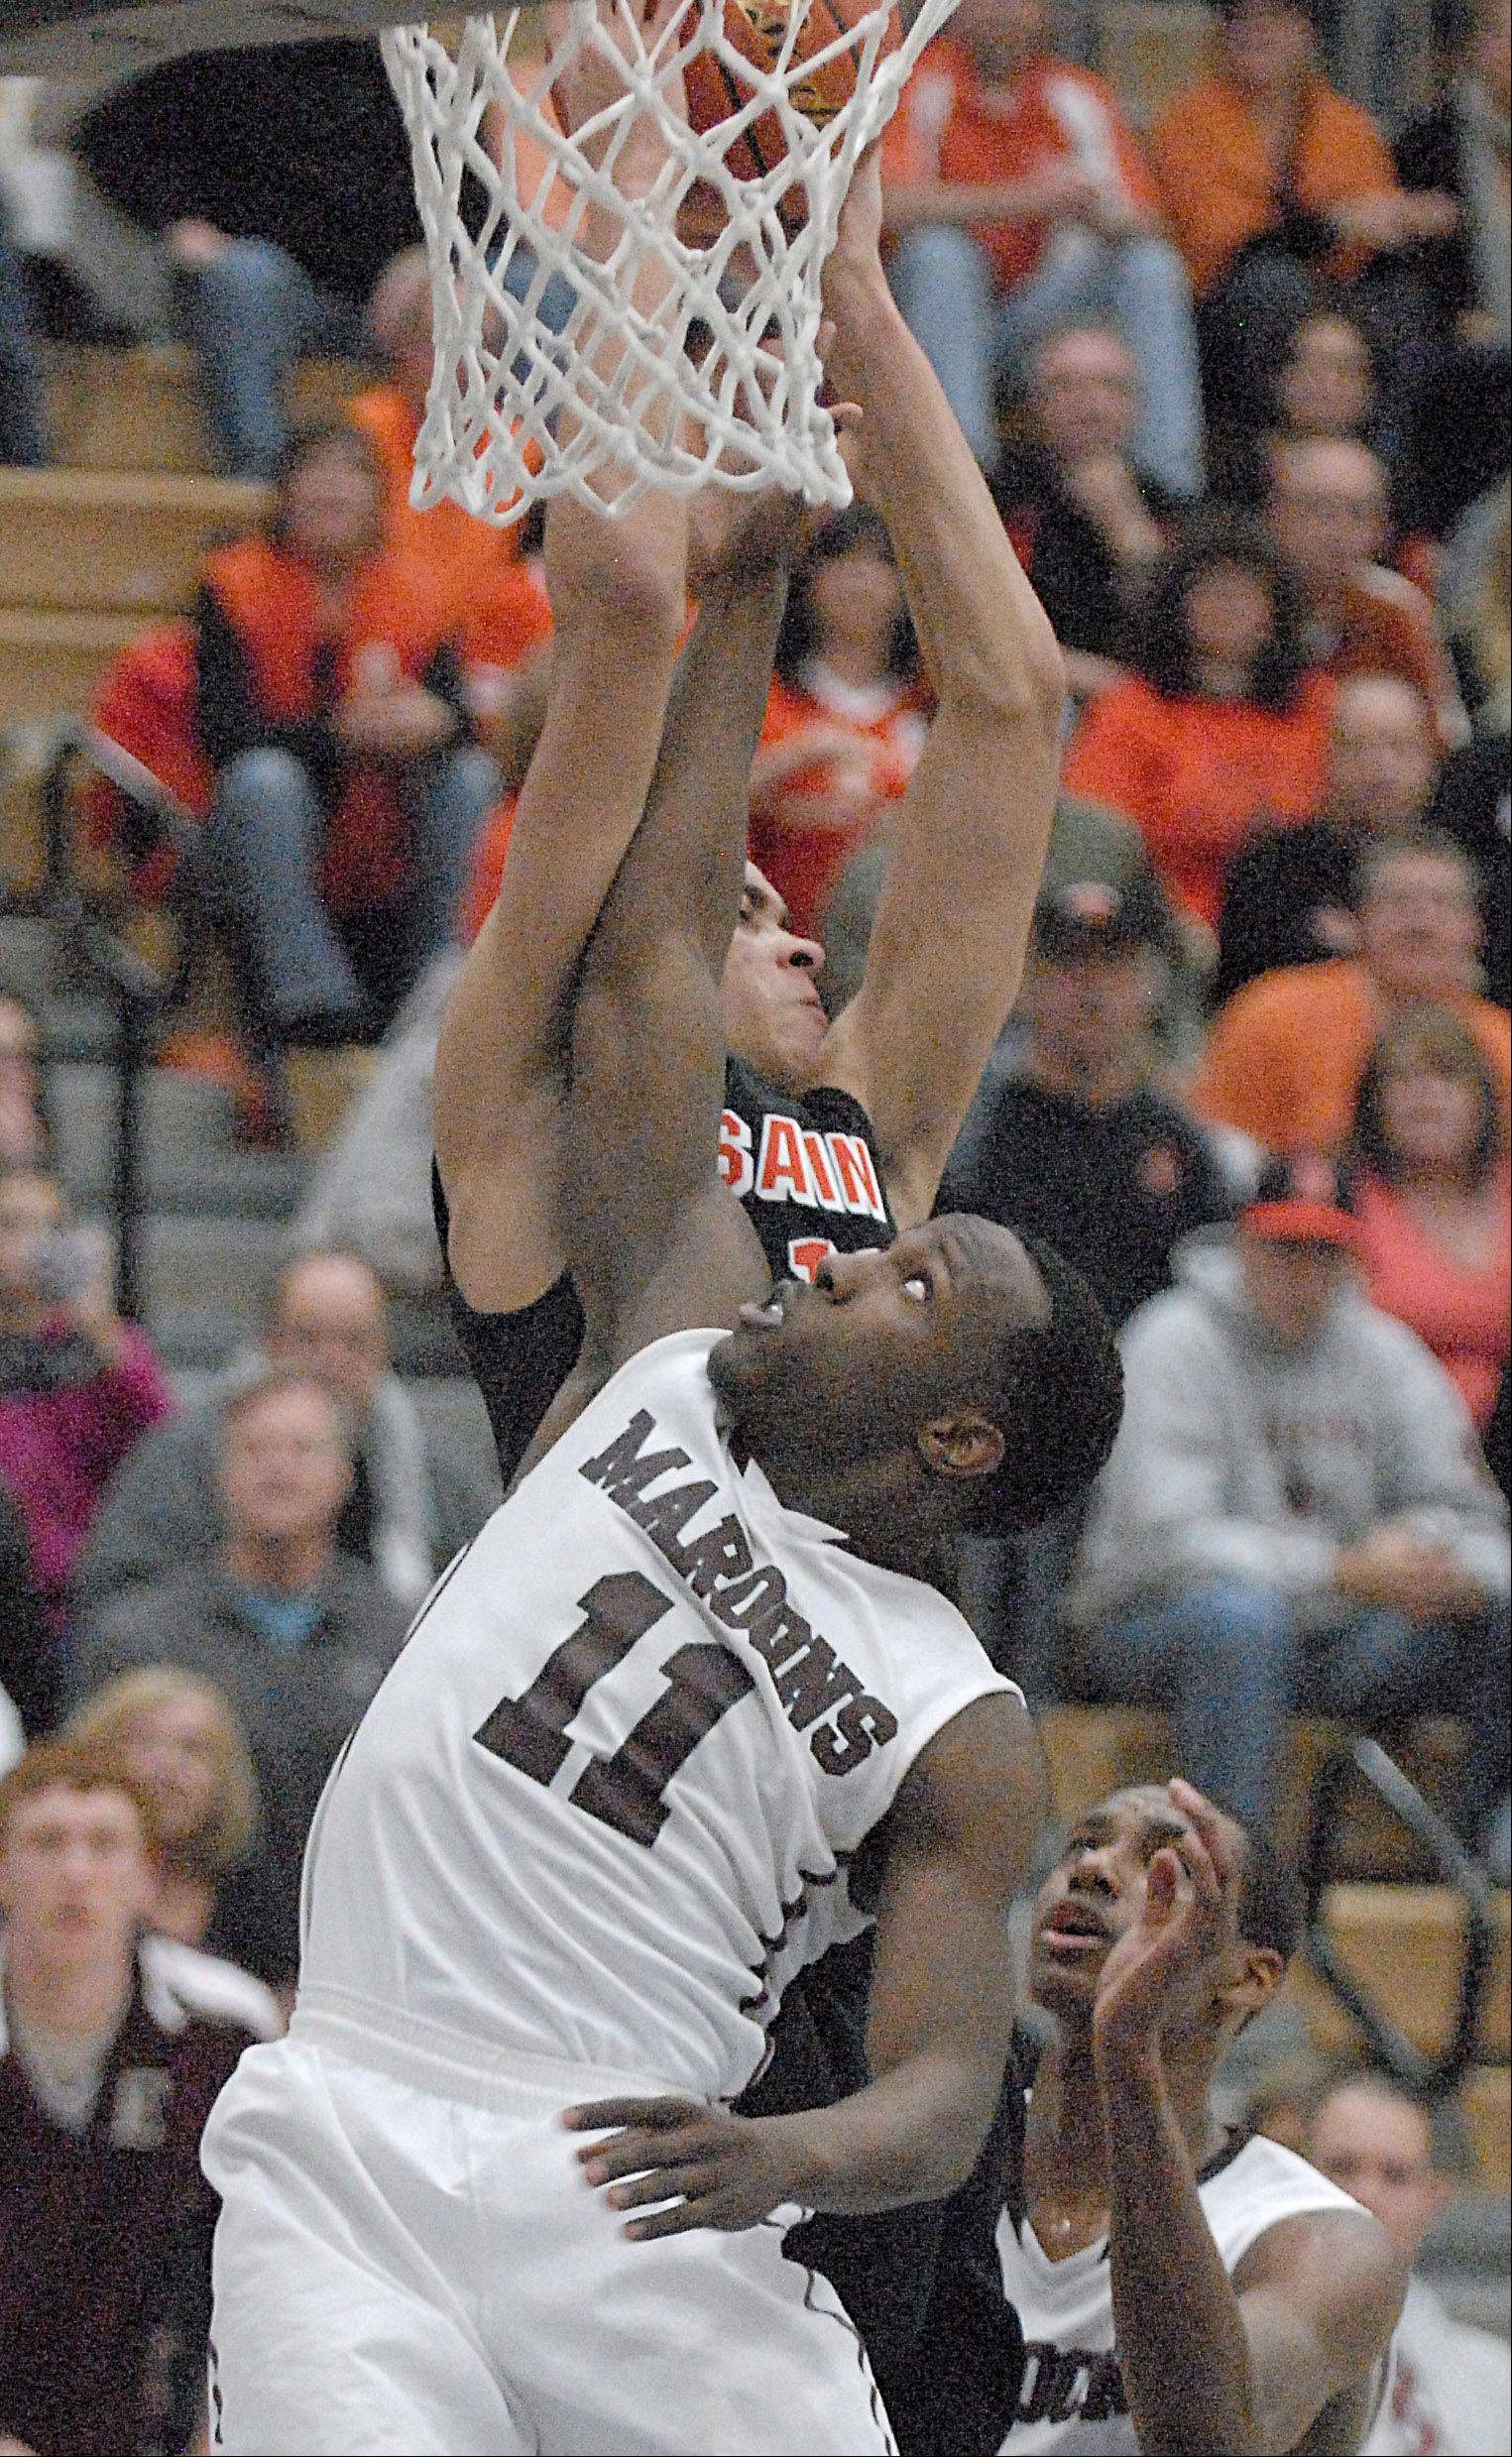 St. Charles East's Kendall Stephens and Elgin's Dennis Moore fight for a rebound in the fourth quarter.